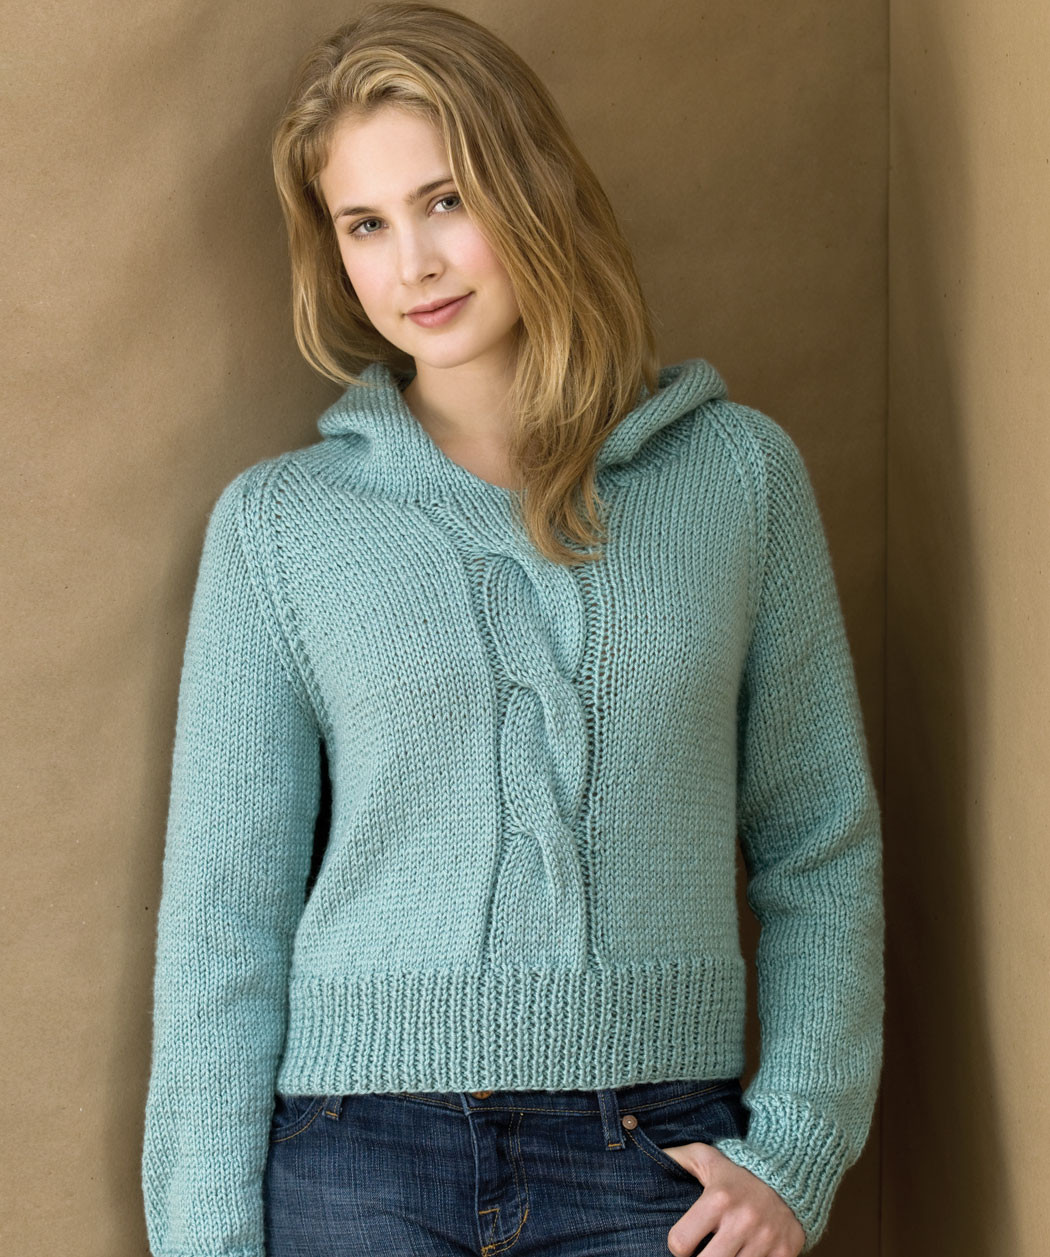 Free Knitting Patterns Sweaters Awesome Cable Knit Sweater Patterns Of Charming 41 Images Free Knitting Patterns Sweaters